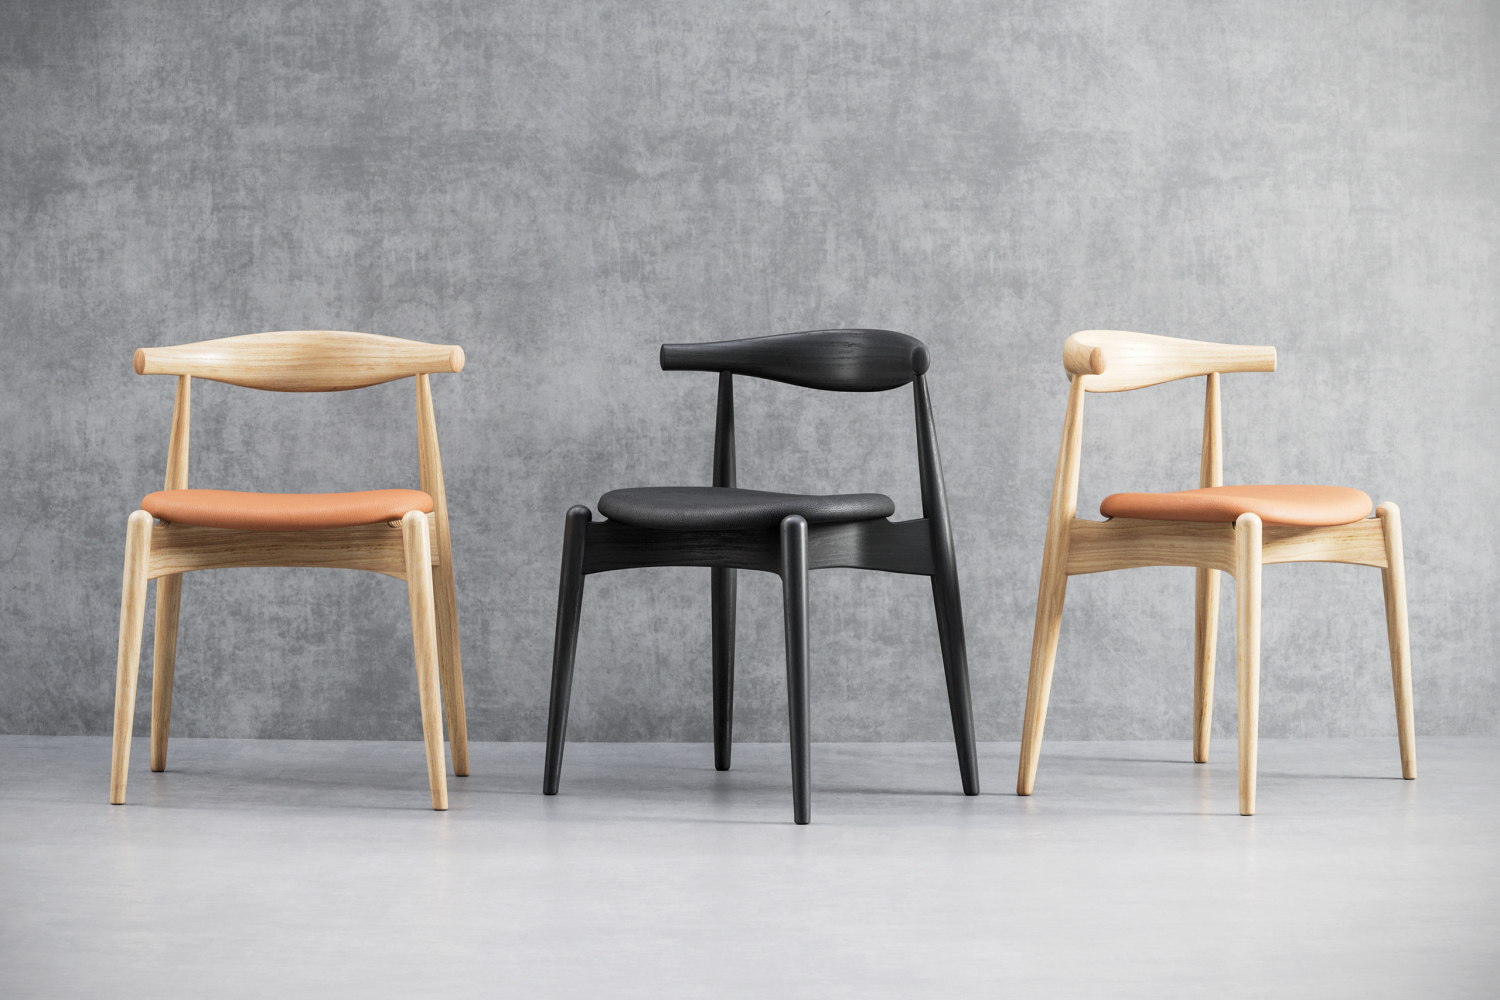 Chairs 3d render